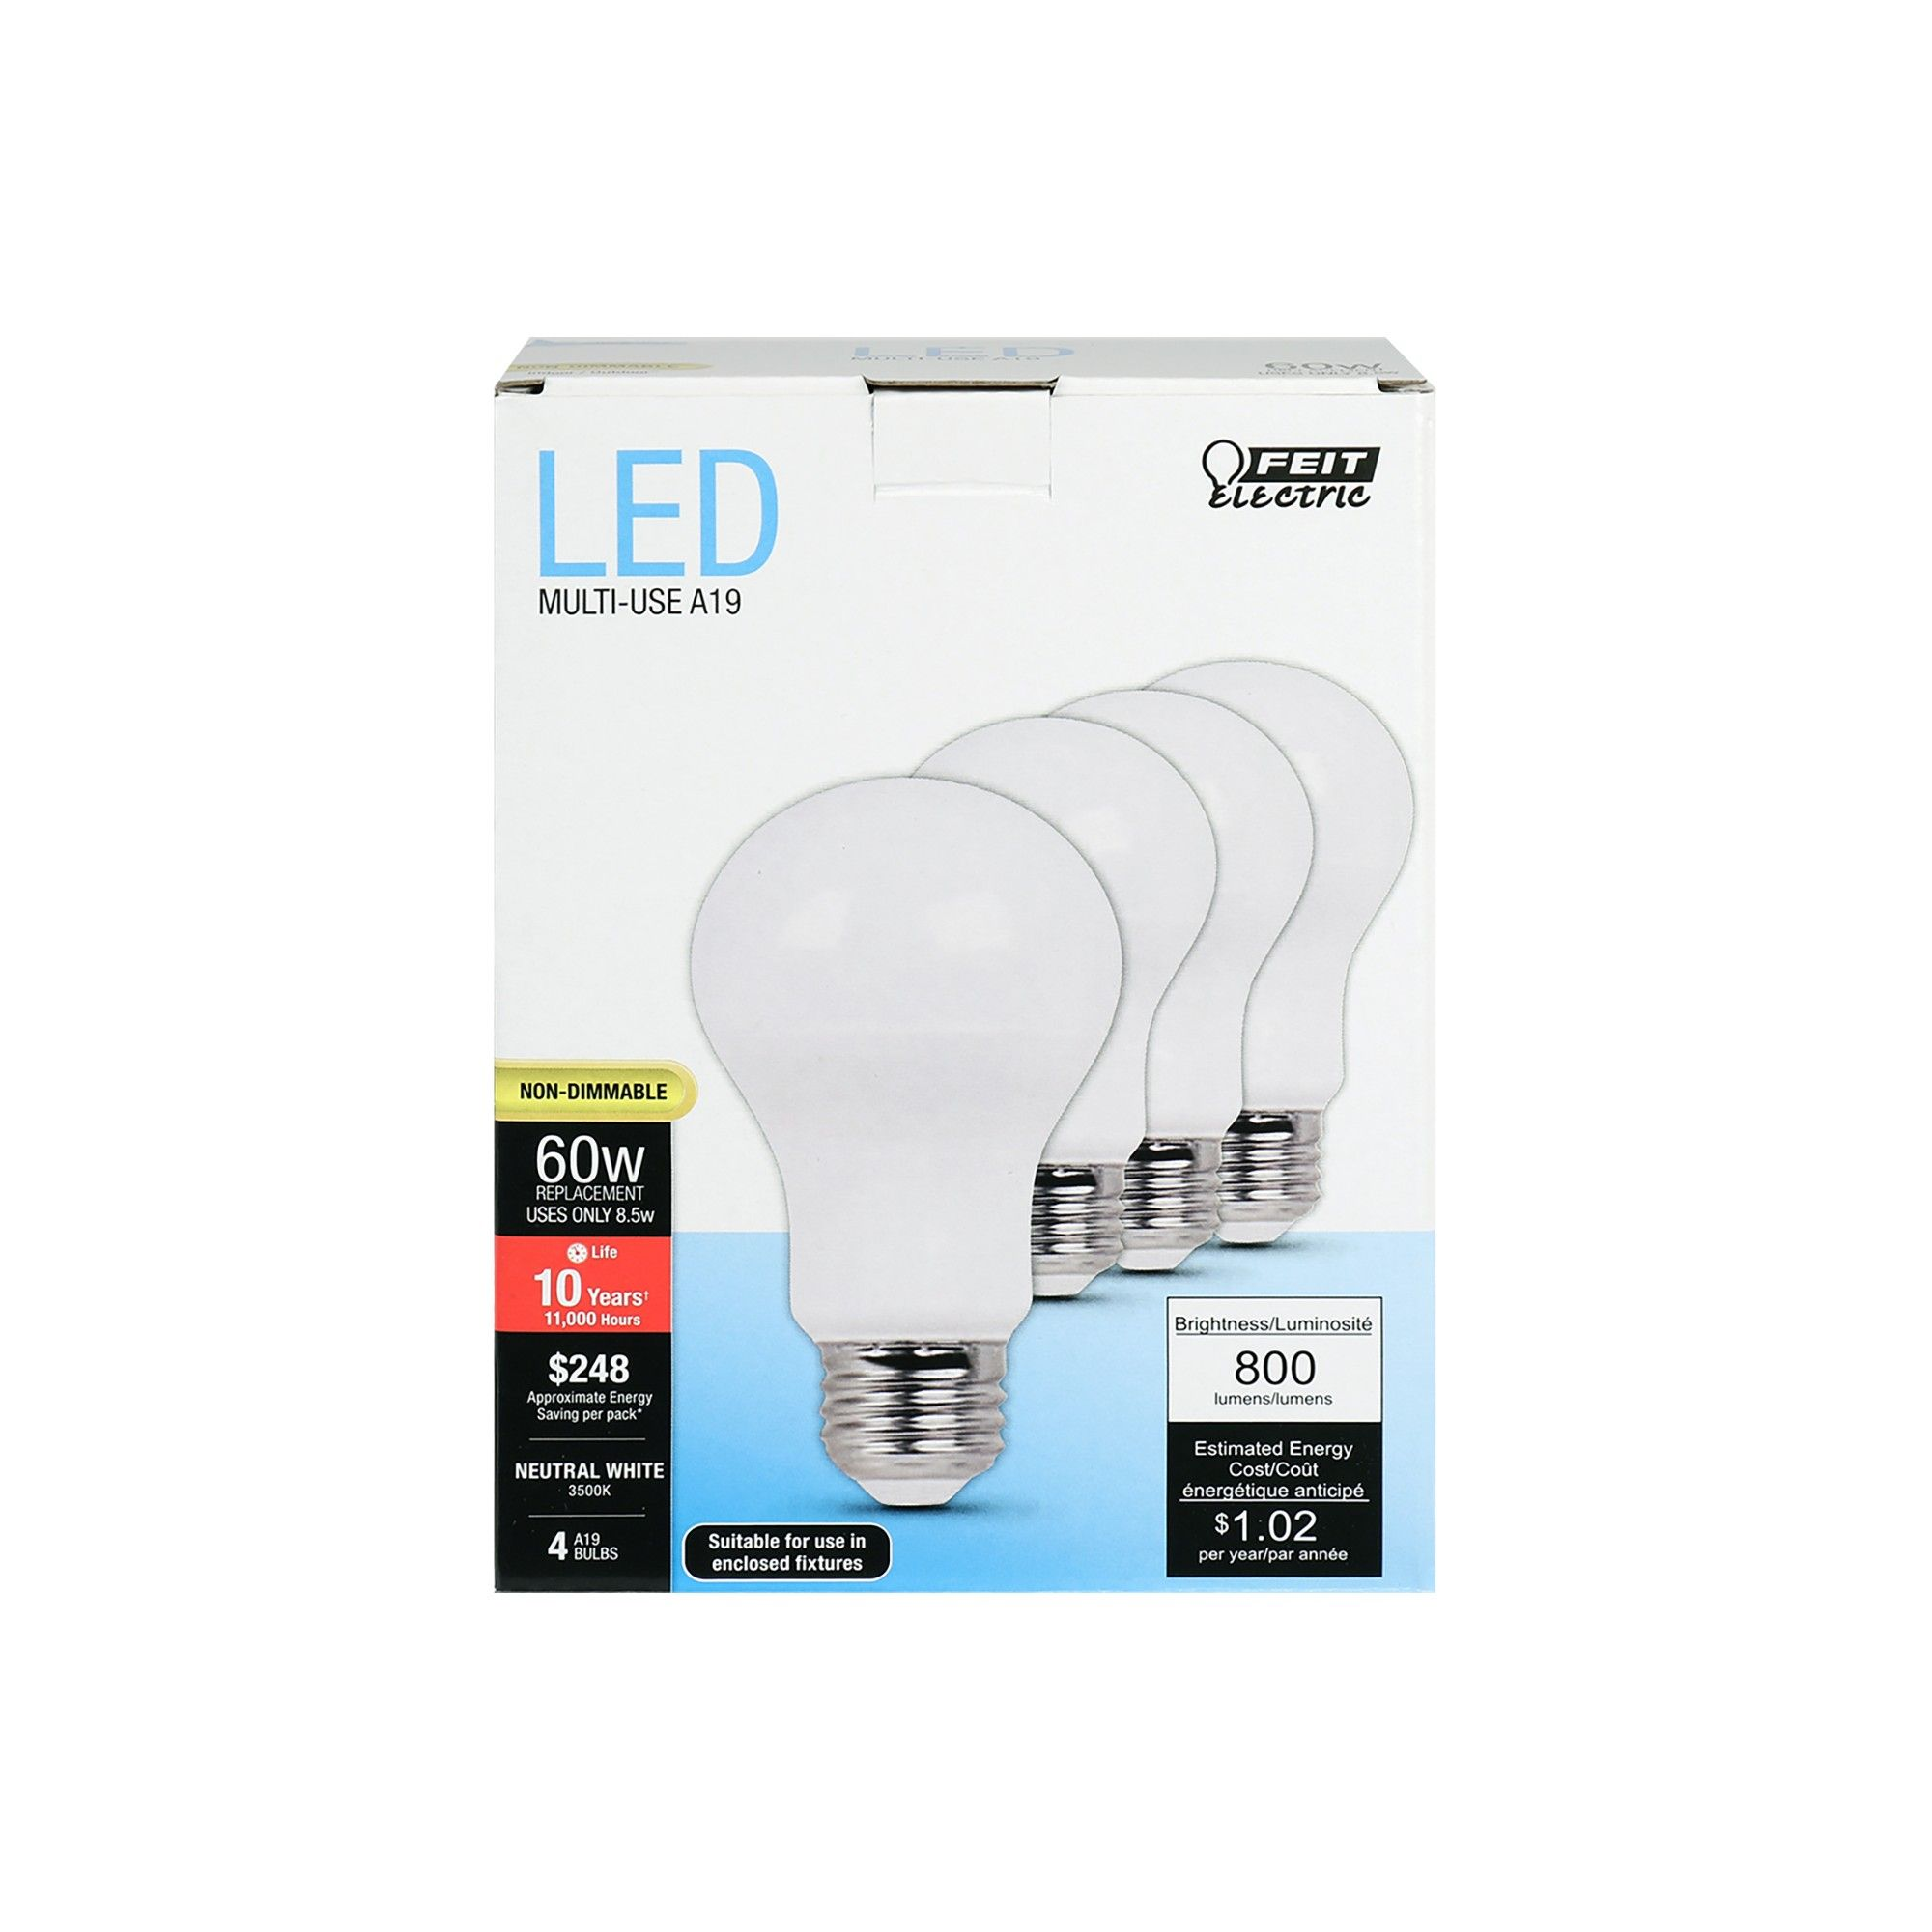 Feit A19 60 Watt Led Light Bulb 4 Pack Soft White With Images Light Bulb Led Light Bulb Bulb